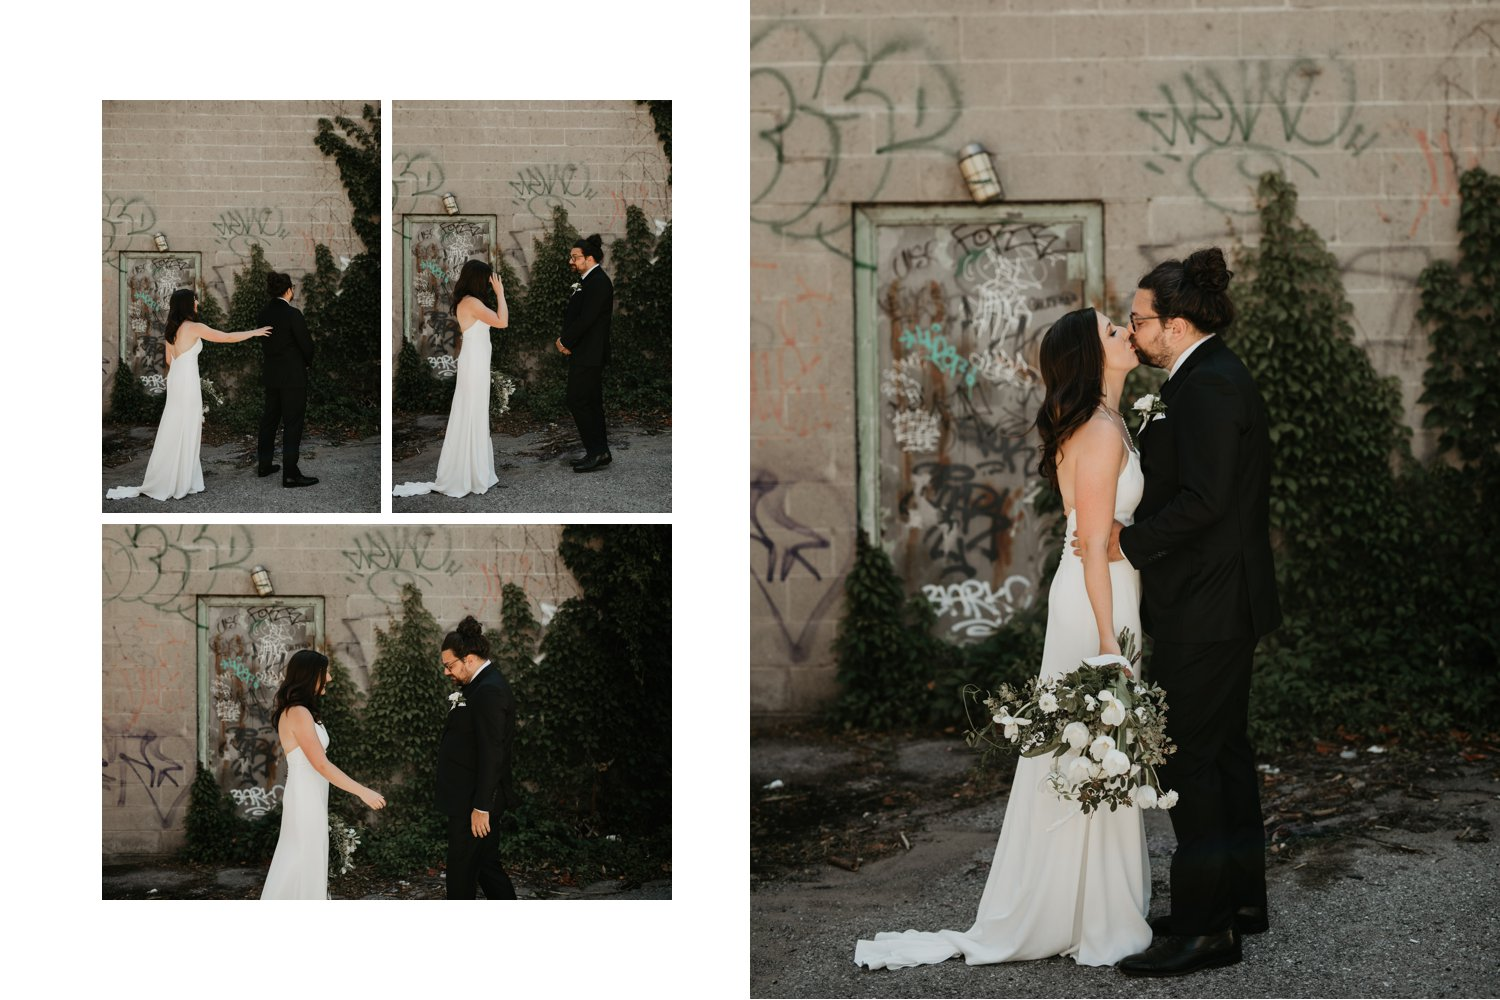 Archeo Wedding - Bride and groom first look